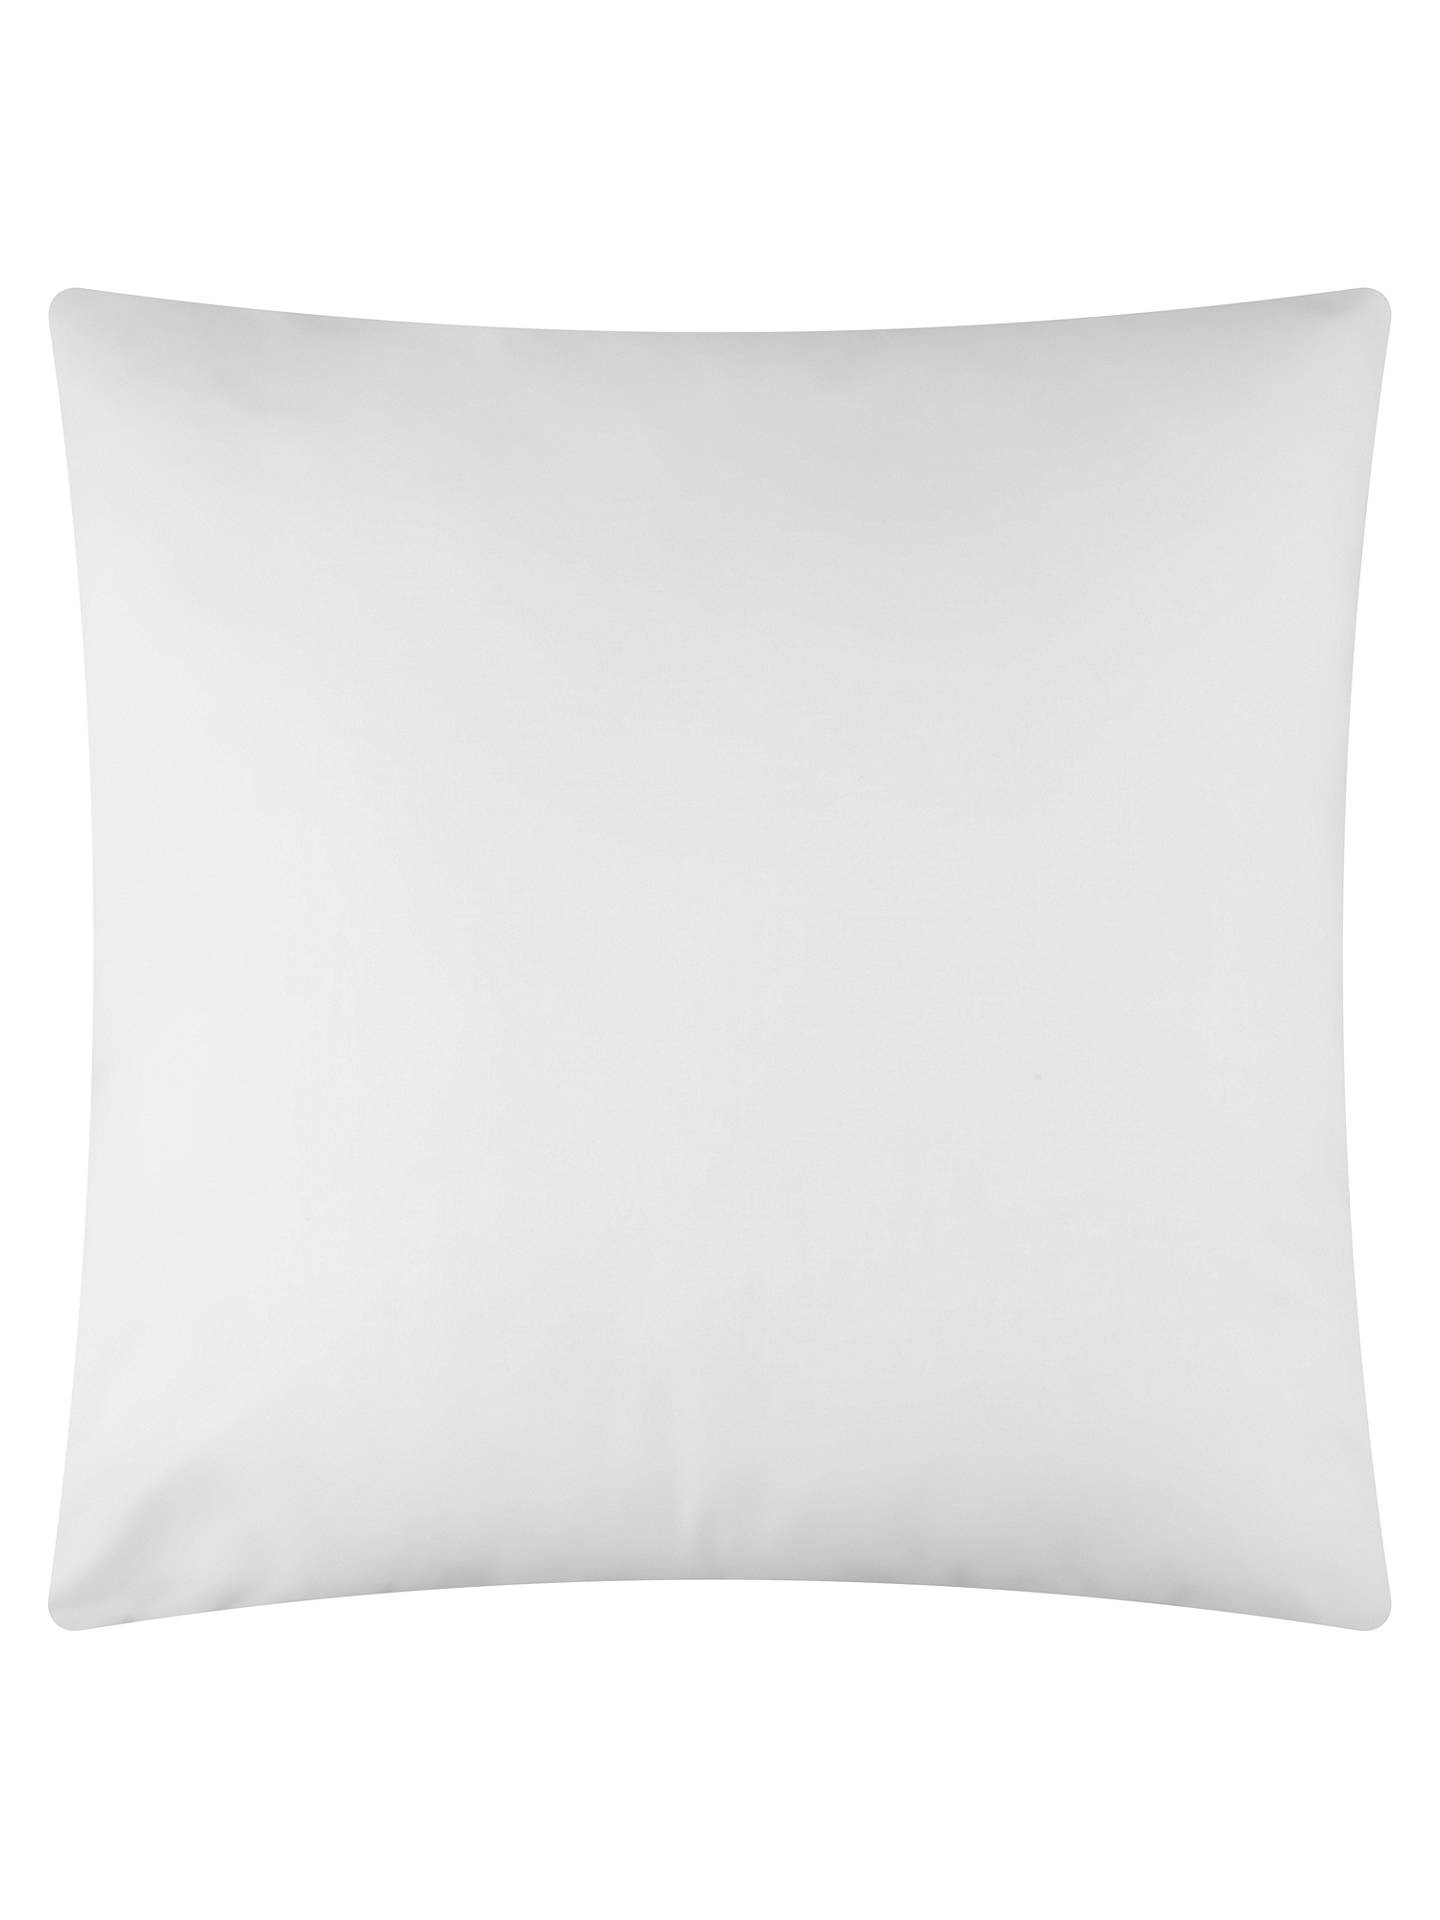 Buy John Lewis & Partners Polyester Cushion Pad, 45 x 45cm Online at johnlewis.com